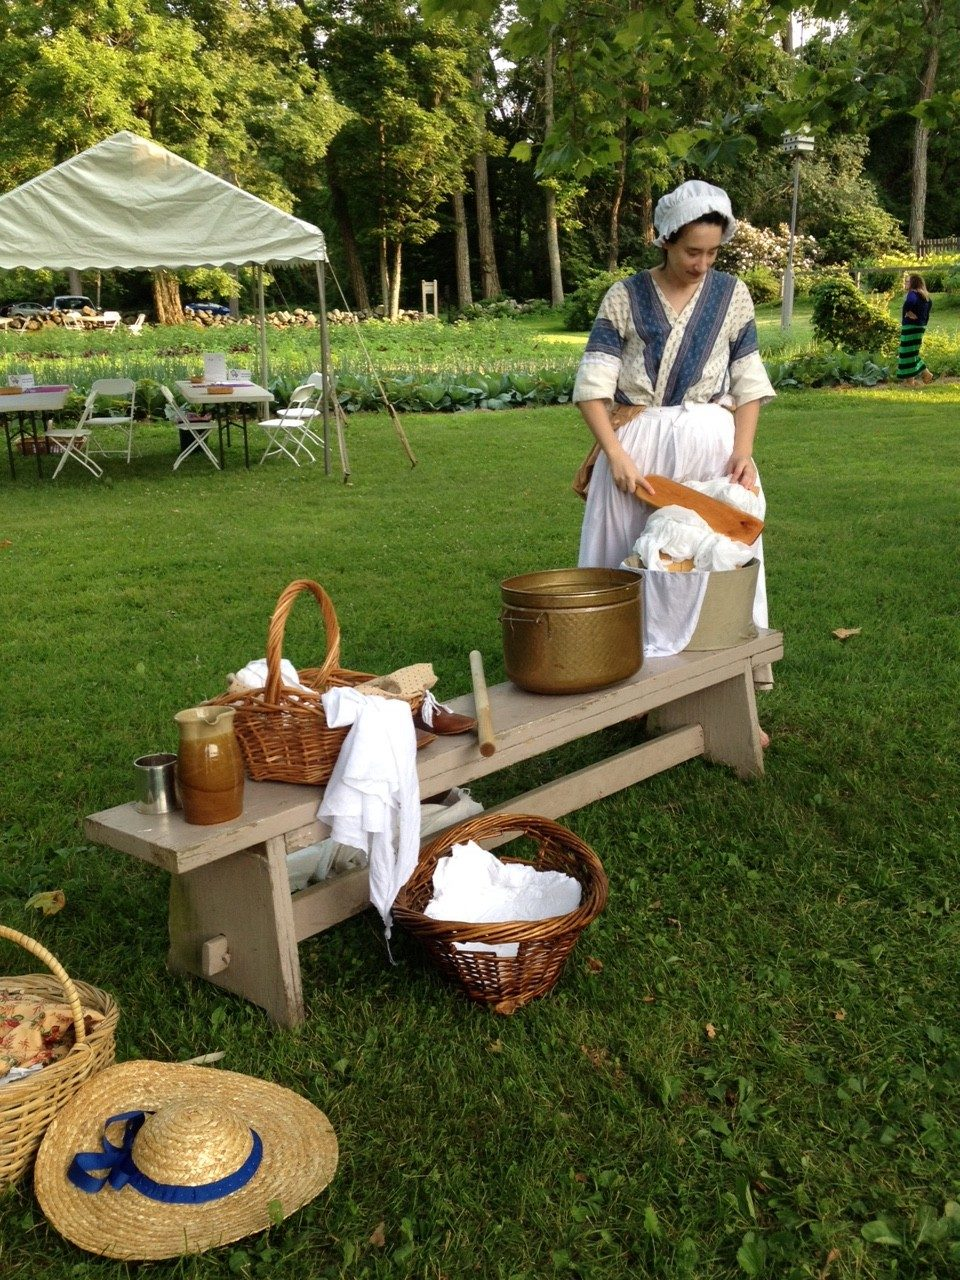 Laundry at the Old Manse